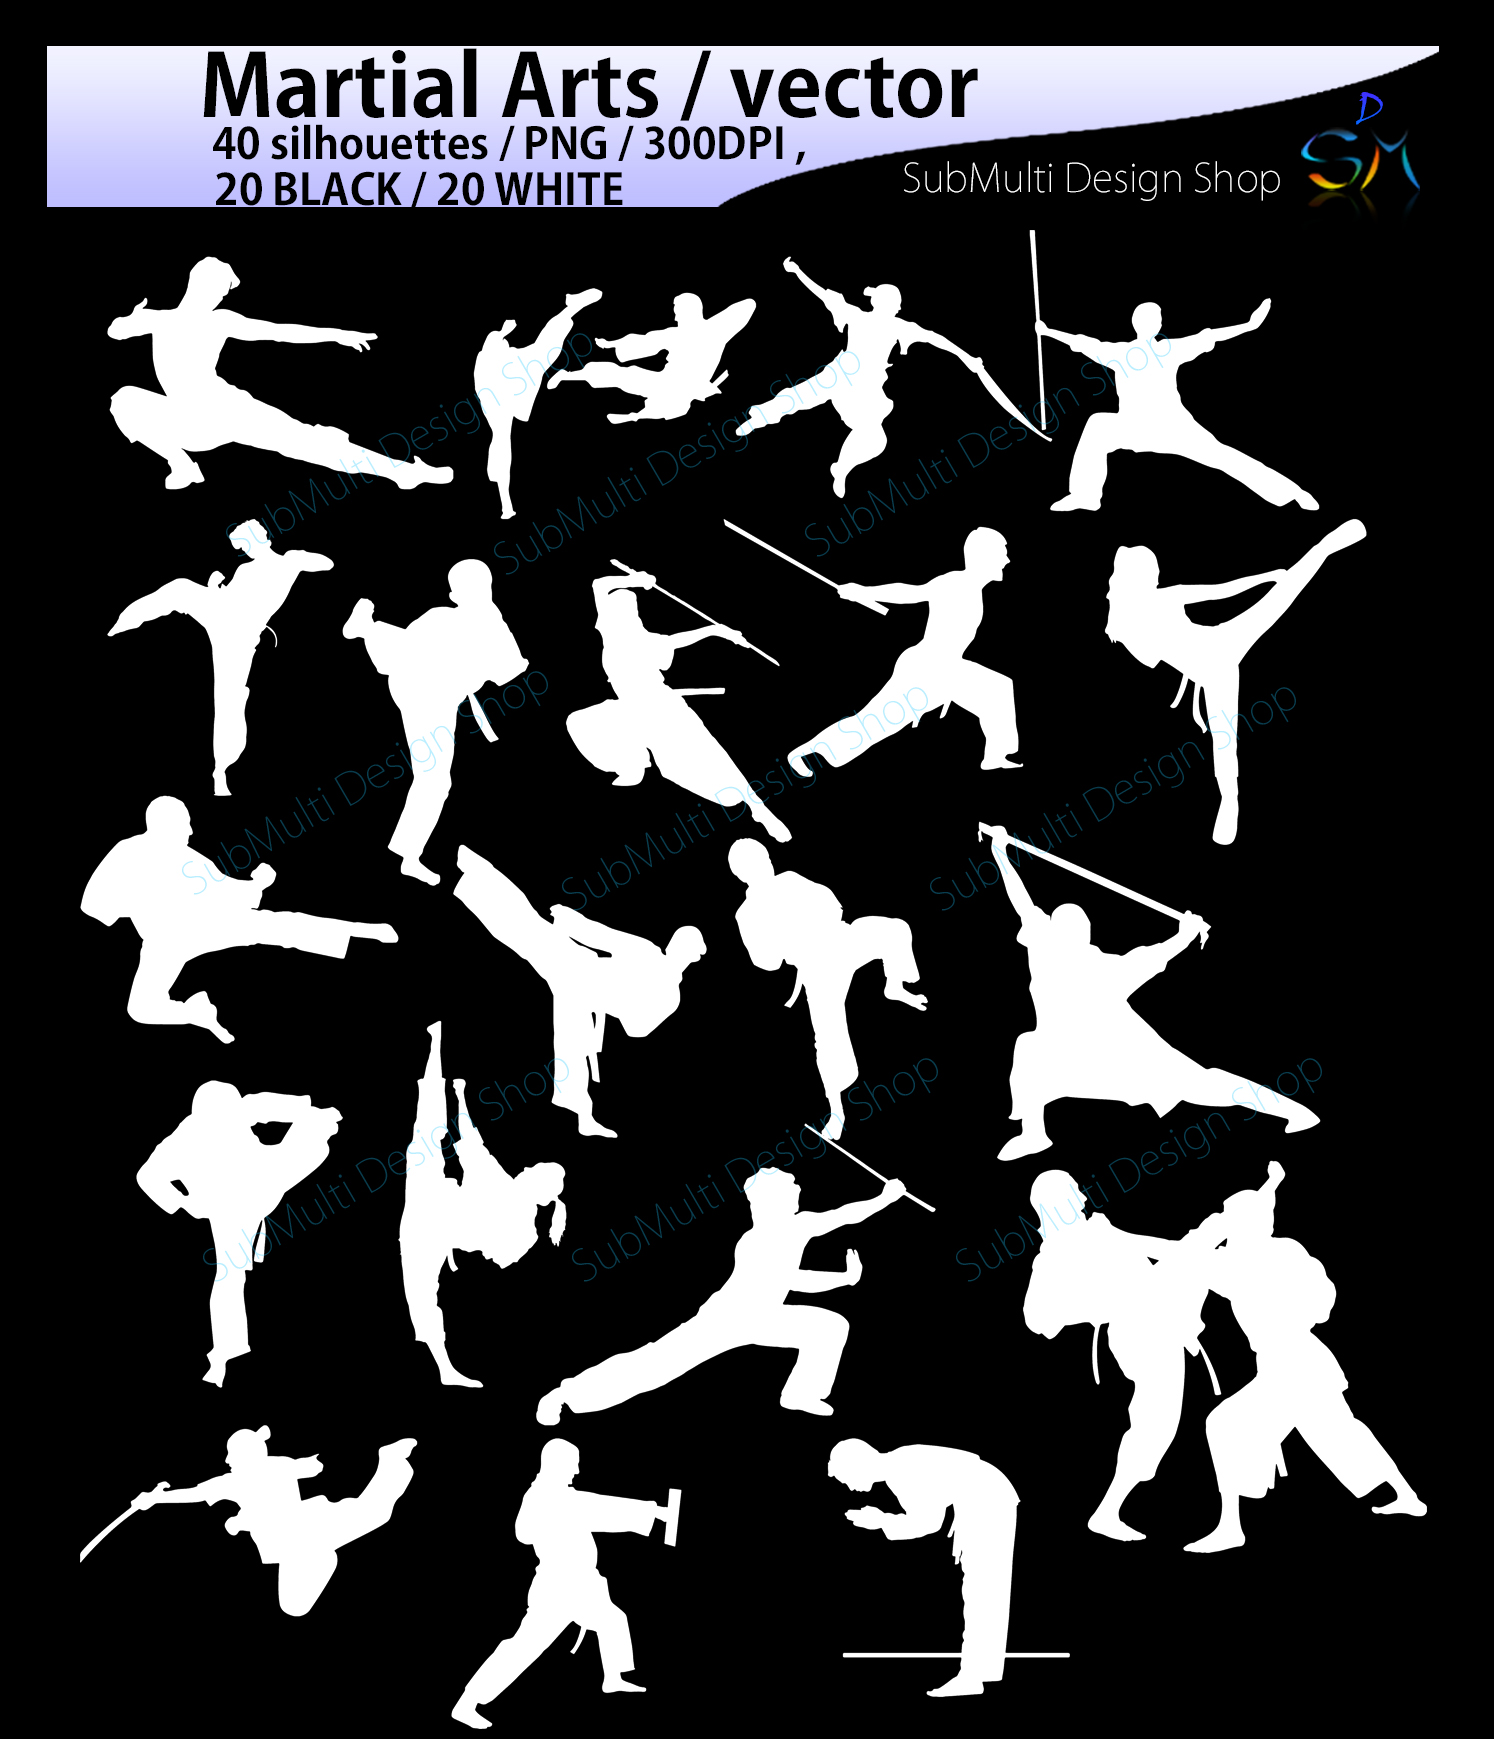 Martial arts SVG / High Quality /Martial art silhouette / Martial arts cliparts / karate silhouette/ silhouette /300 DPI / EPS / PNg/ DXf example image 3